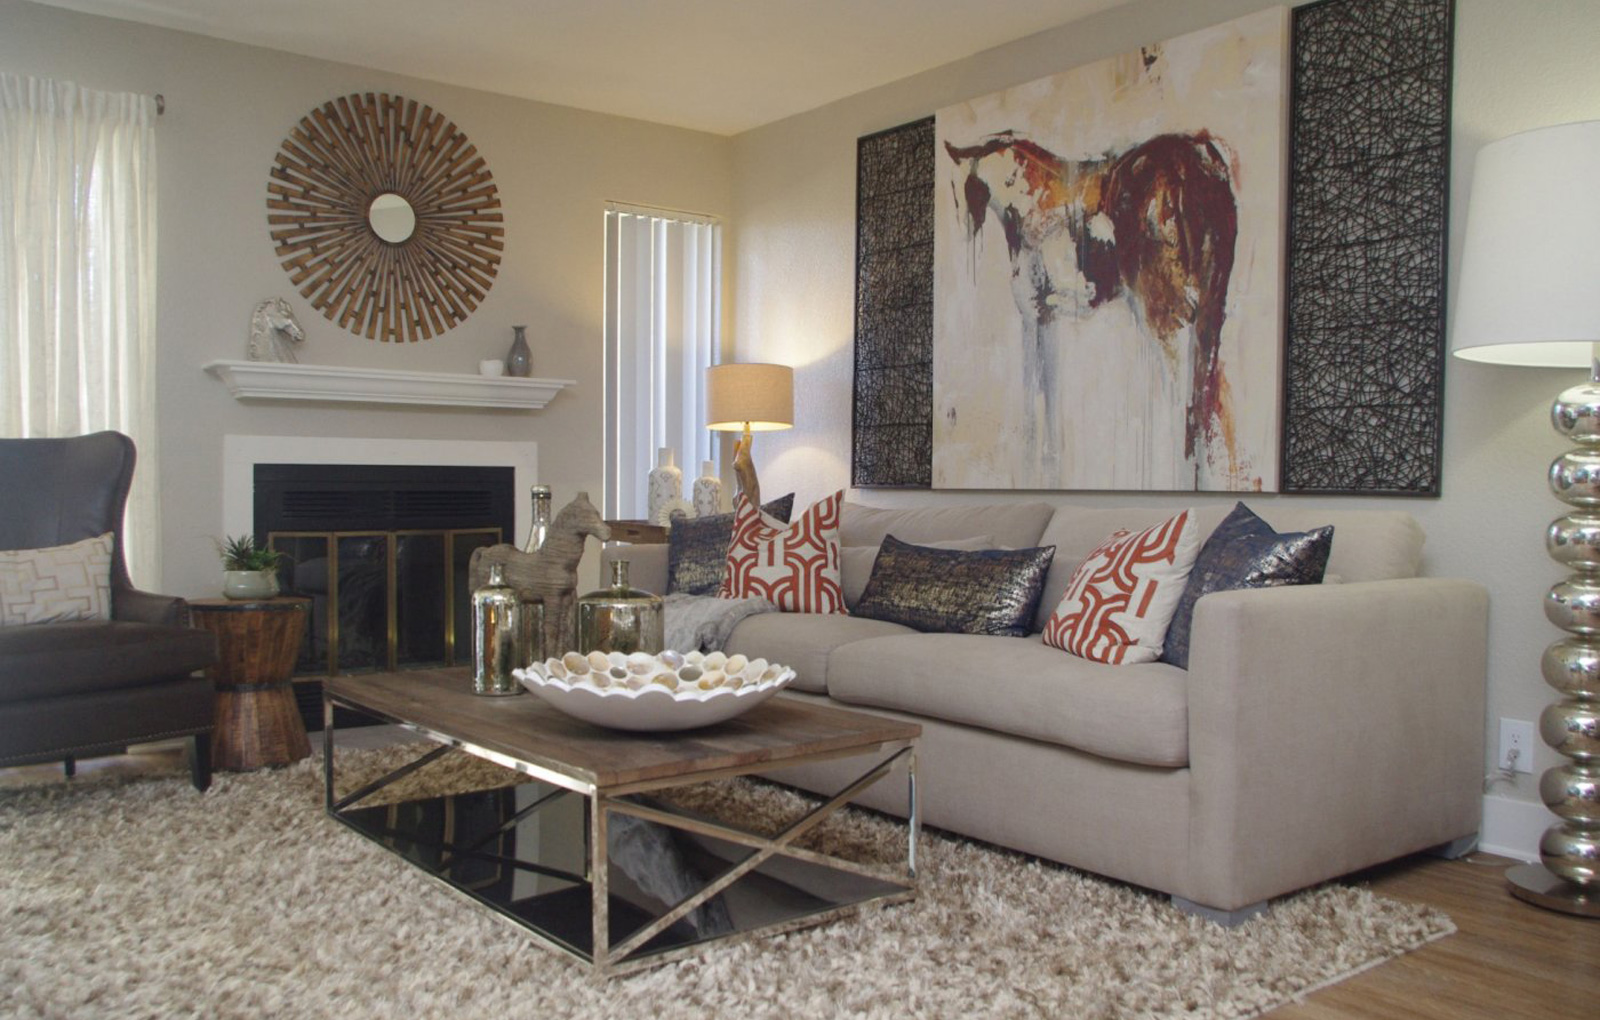 Kirker creek luxury apartments for rent in pittsburg ca